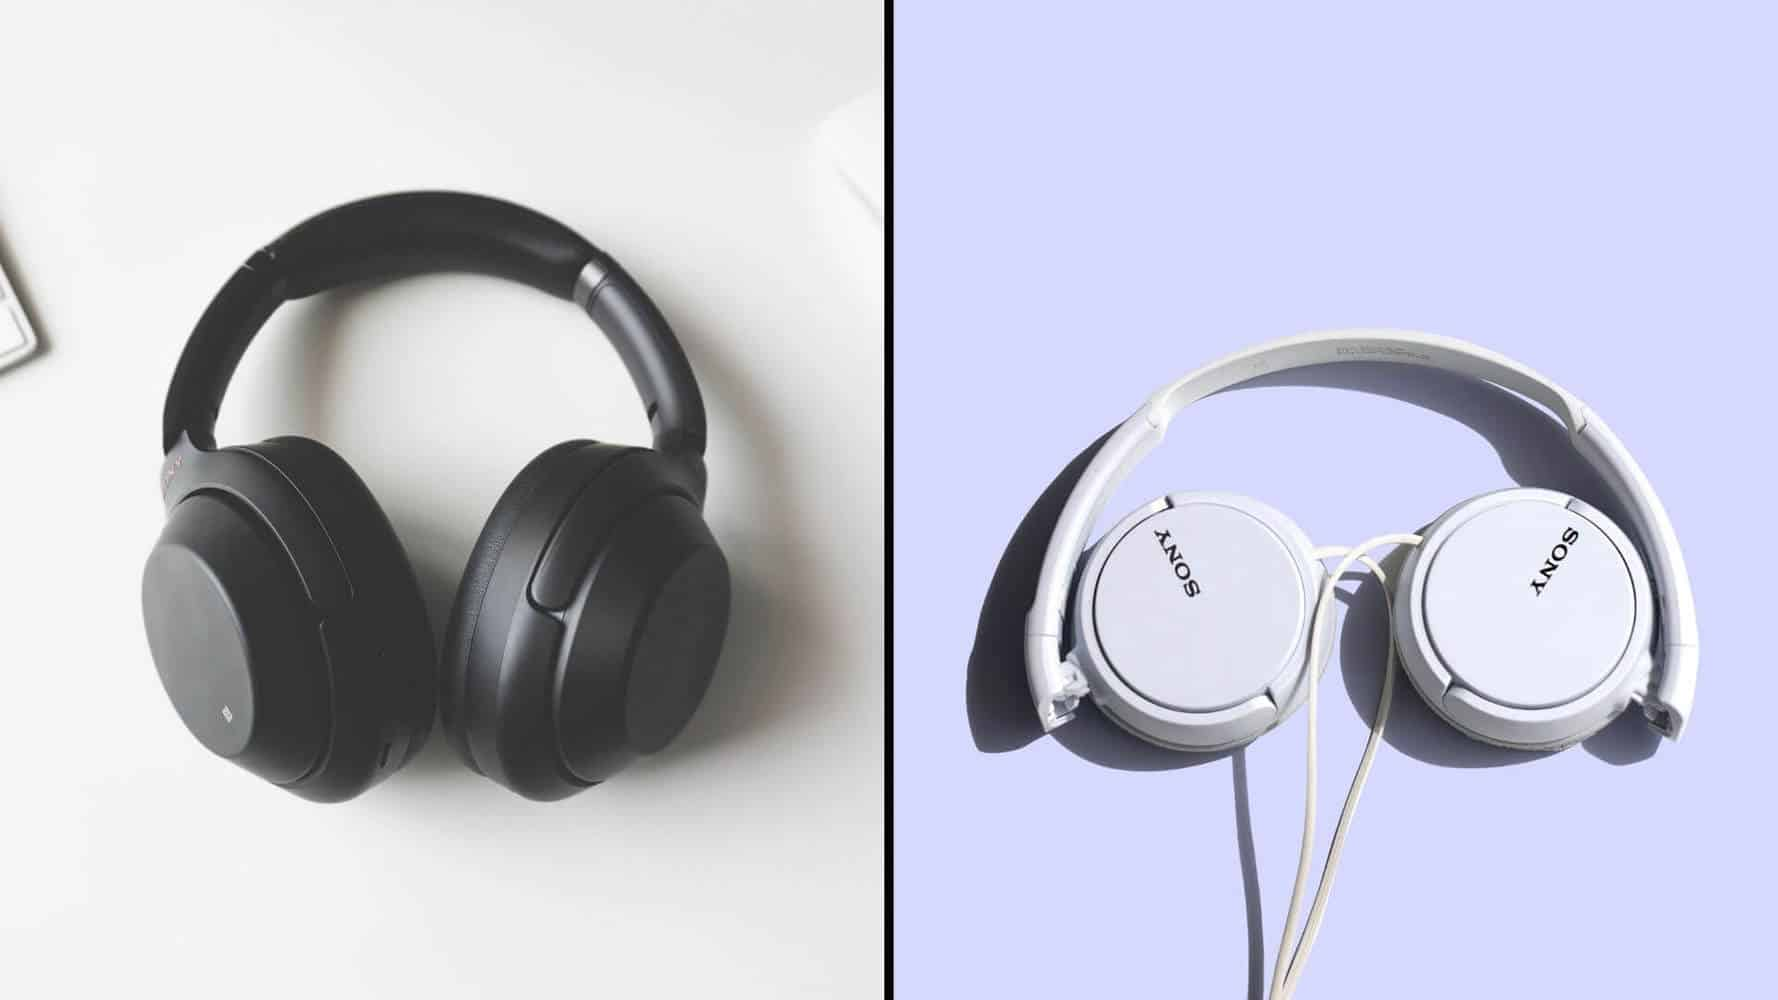 What's better to get in 2020? A wireless or wired headset?